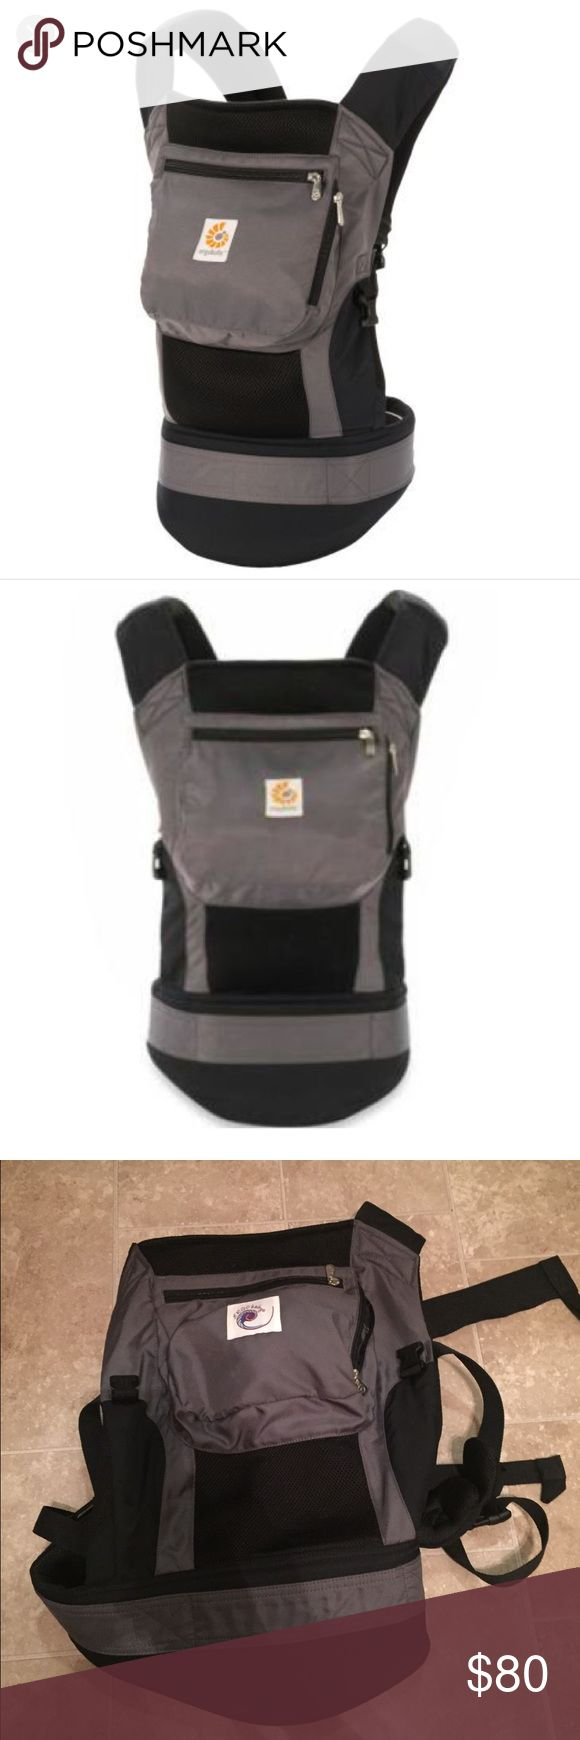 Ergo baby carriers Used only a couple of times.  Love love love this carrier!   Very comfortable. ergo Other